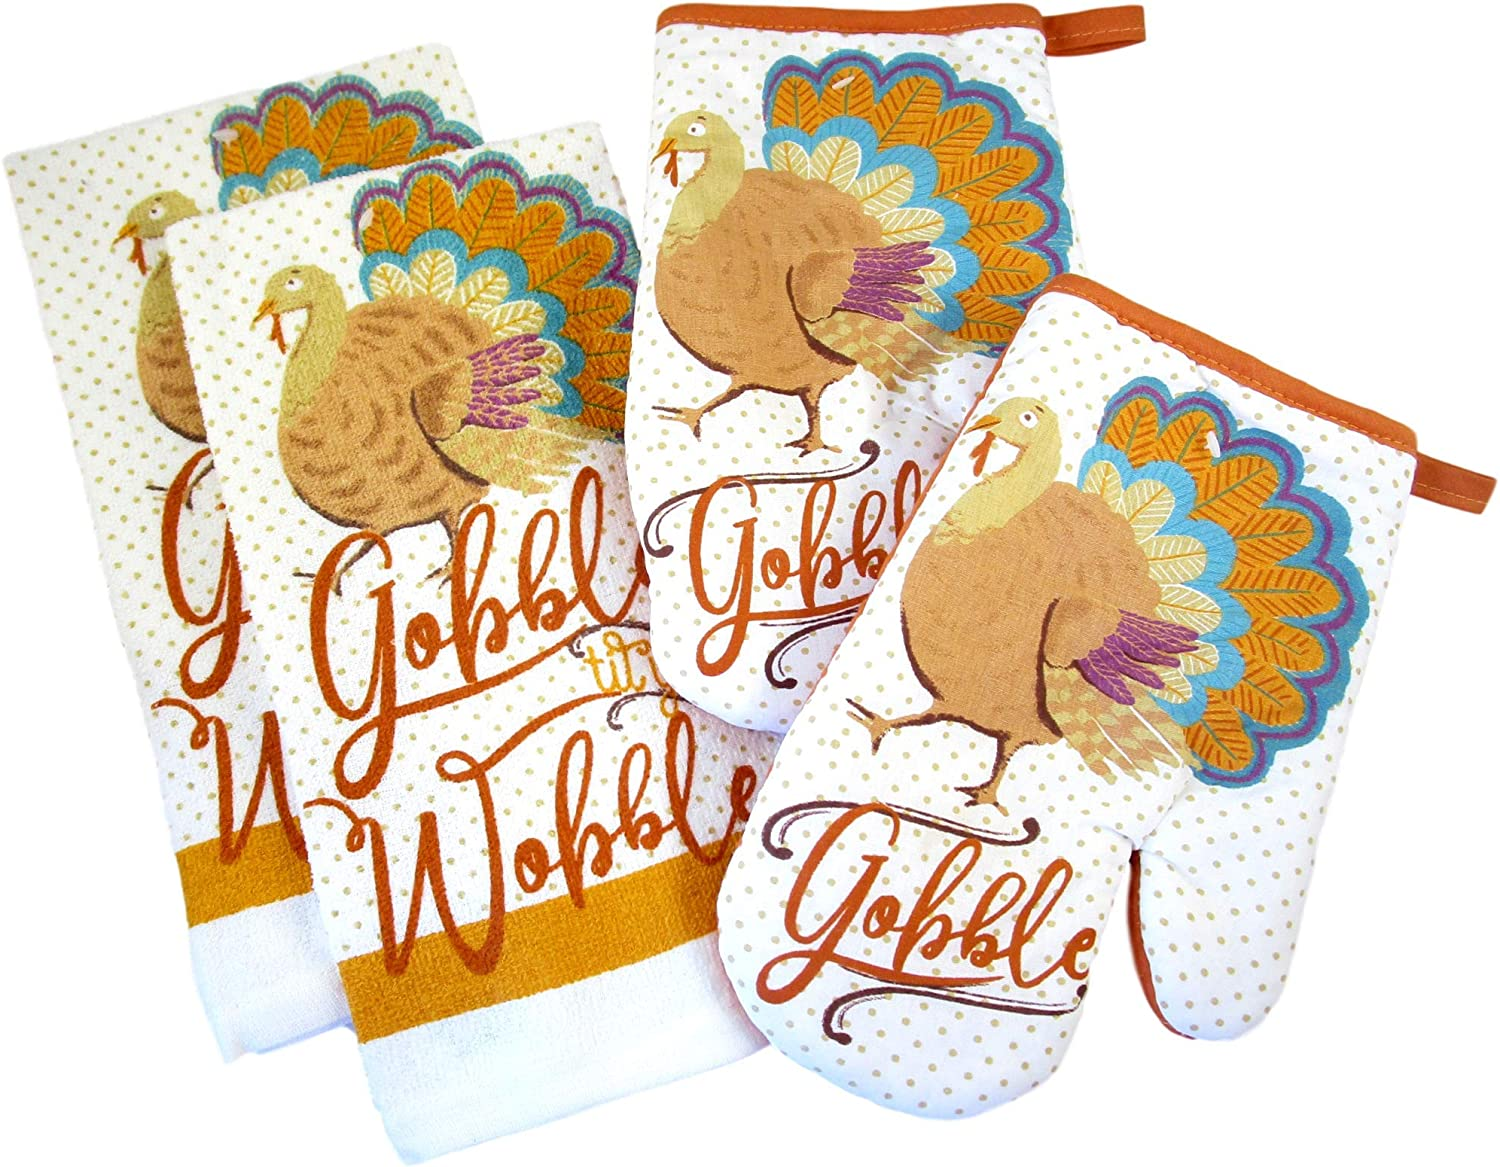 Fall Harvest Thanksgiving Kitchen Towels and Oven Mitts - Bundle of 4 Items: 2 Dish Towels and 2 Oven Mitts (Polka Dot Turkey - Gobble)